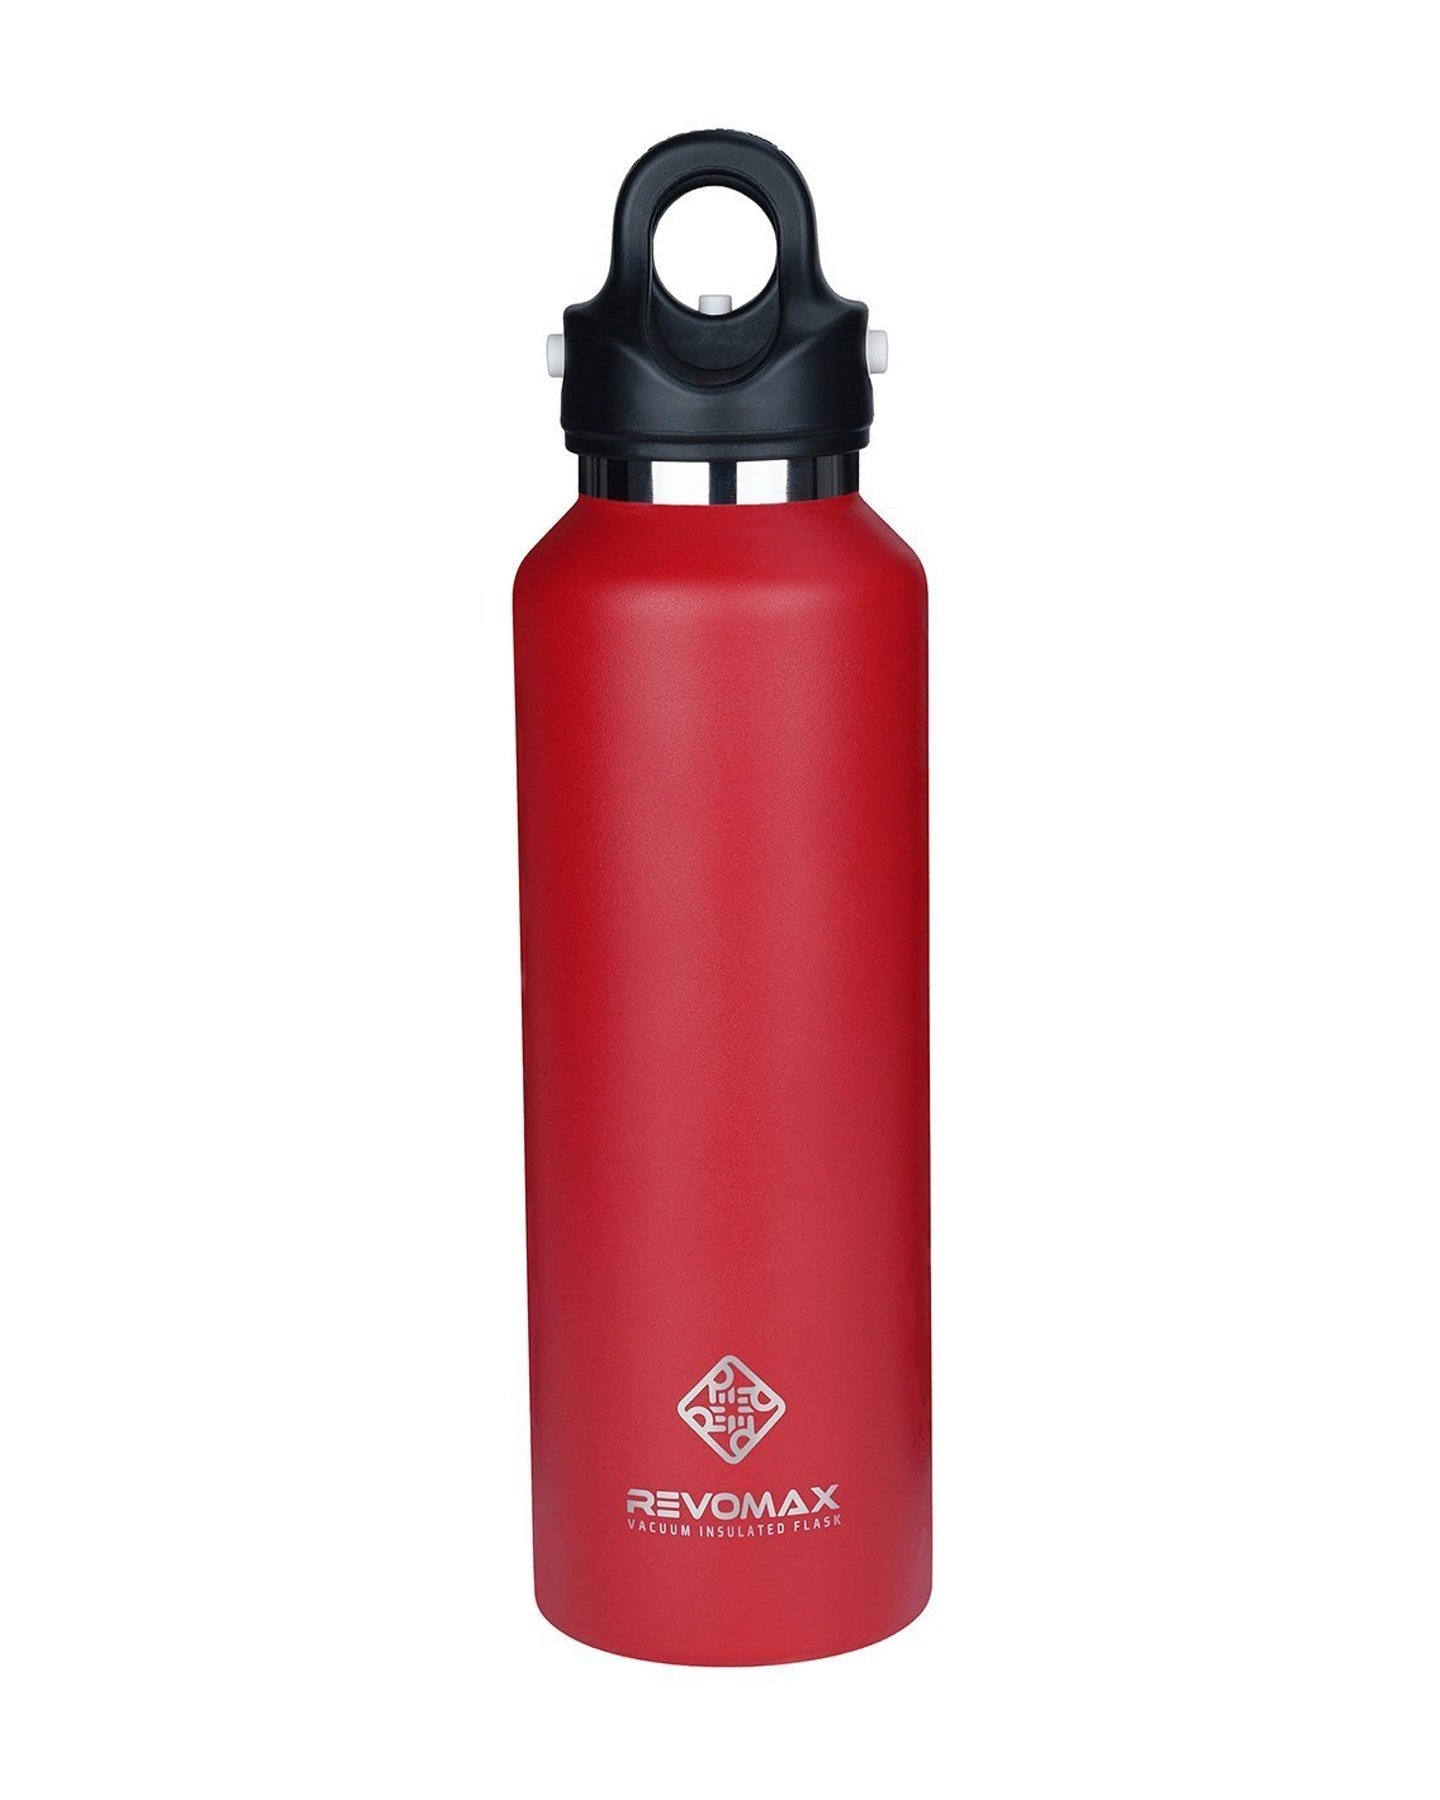 Revomax 592Ml - 20Oz Insulated Flask Drink Bottle Fire Red